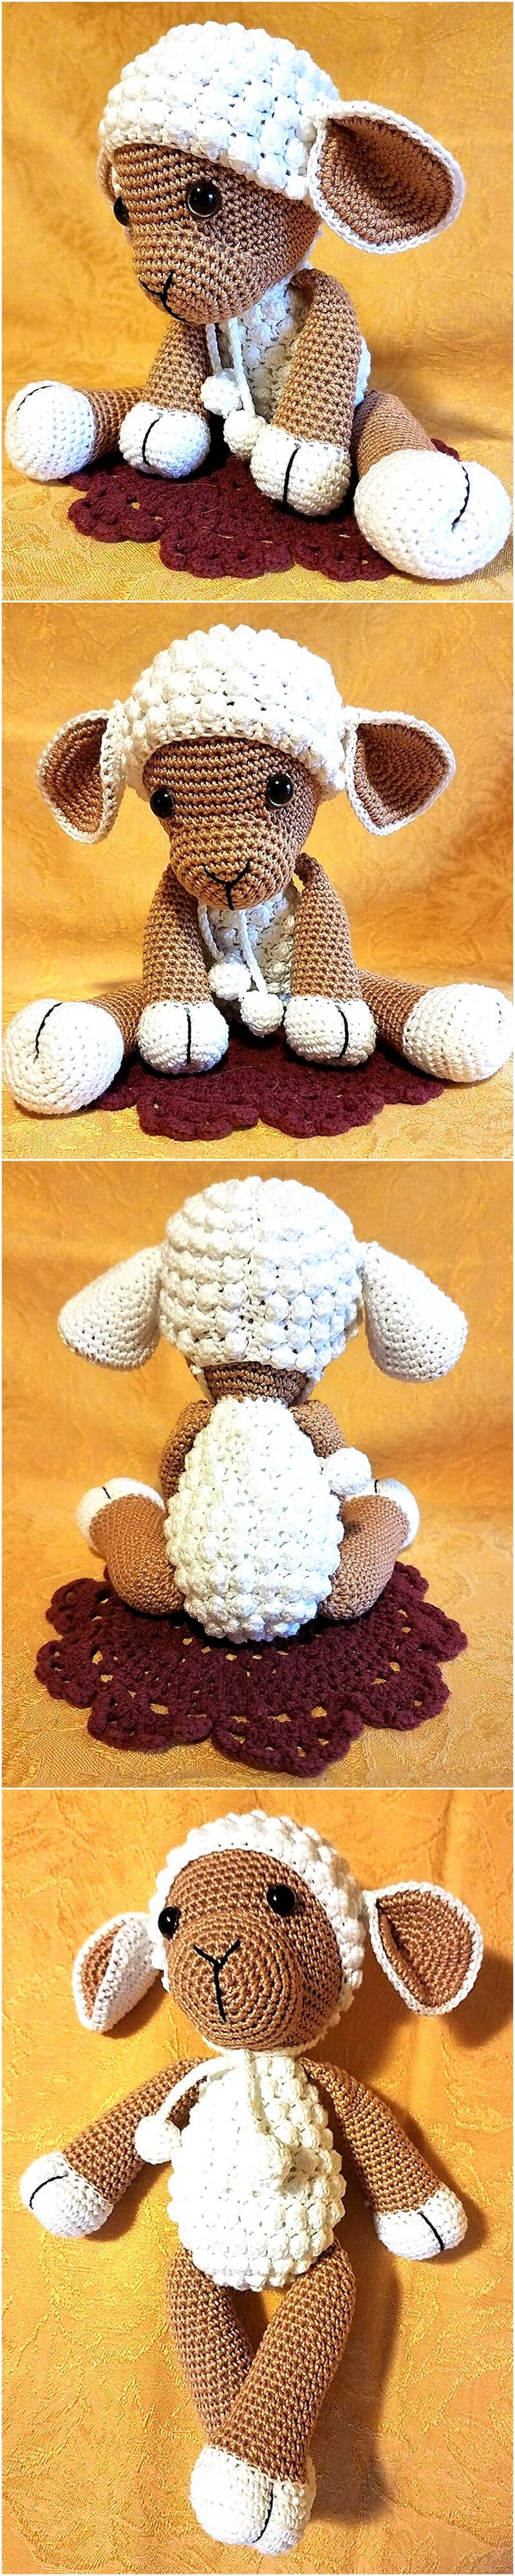 crochet amigurumi ideas 9